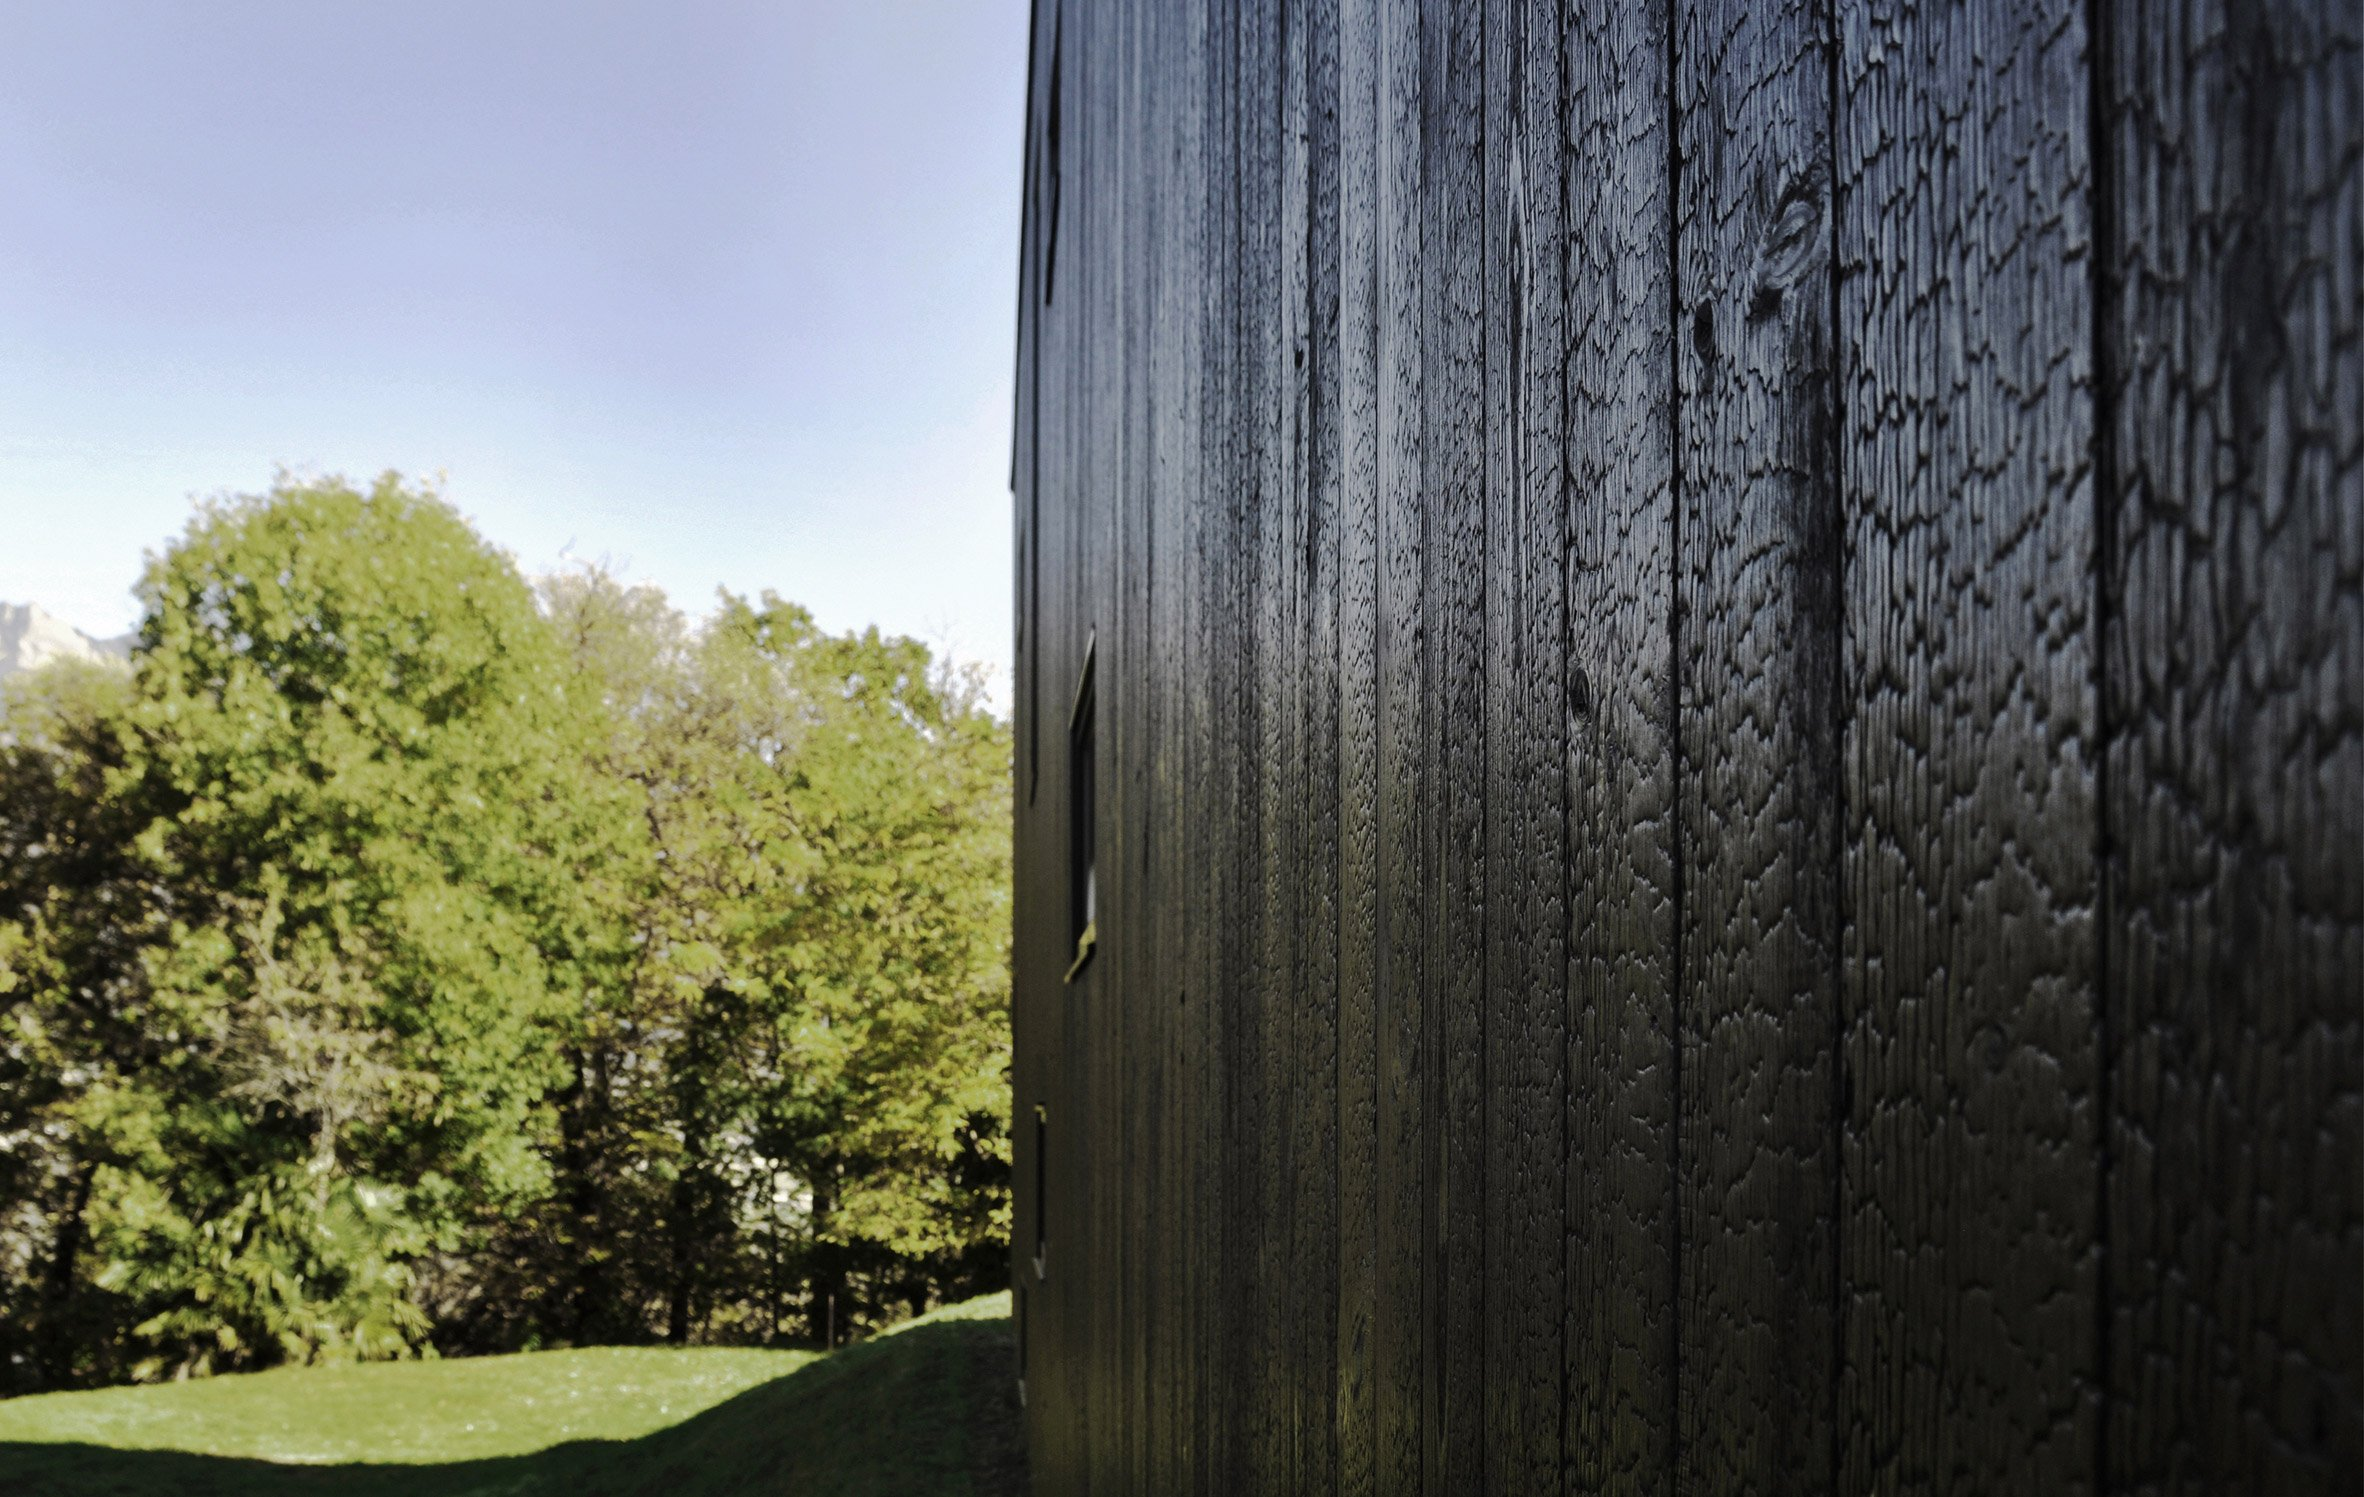 THEWOODBUILDING is a prefabricated wooden holiday home clad in charred timber boards by designers Nicole Lachelle and Christian Niessen